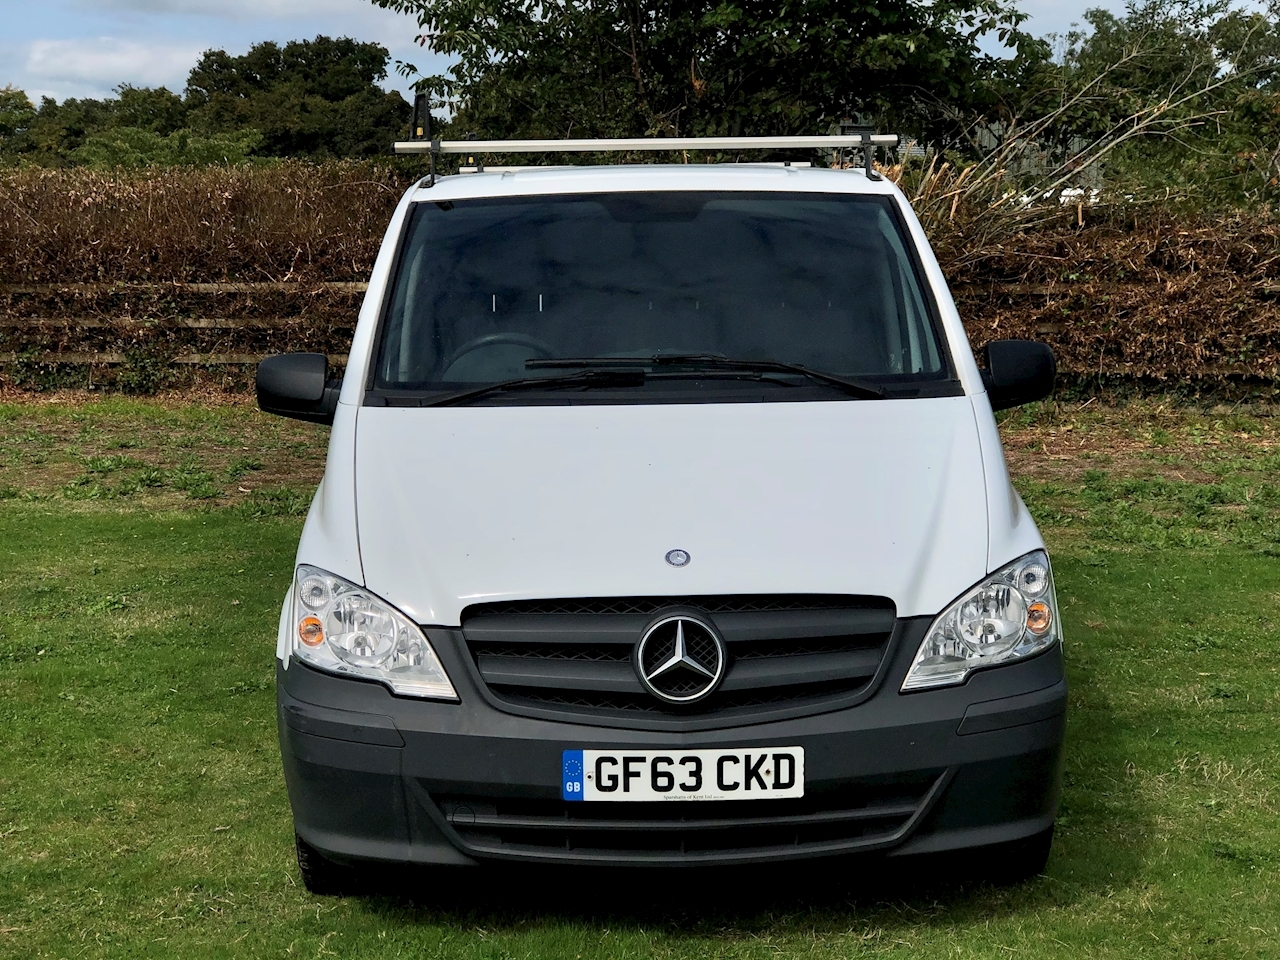 Mercedes-Benz Vito 2.1 113CDI BlueEFFICIENCY Compact Panel Van 5dr Diesel Manual (EU5) (182 g/km, 136 bhp) Compact Panel Van 2.1 Manual Diesel